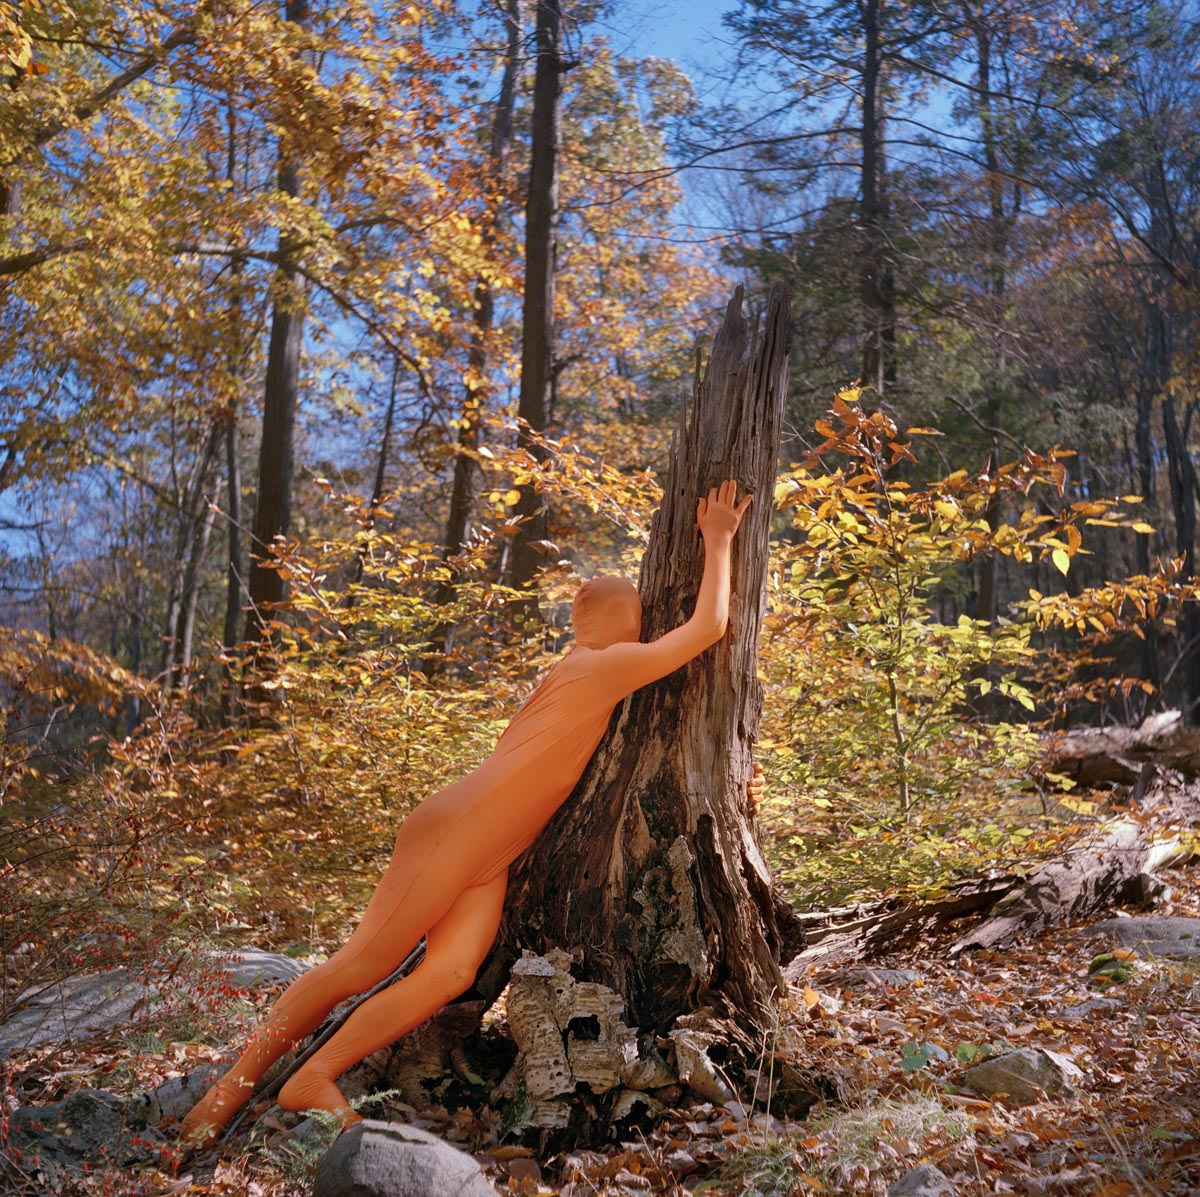 Matthew Morrocco, Hugging Tree